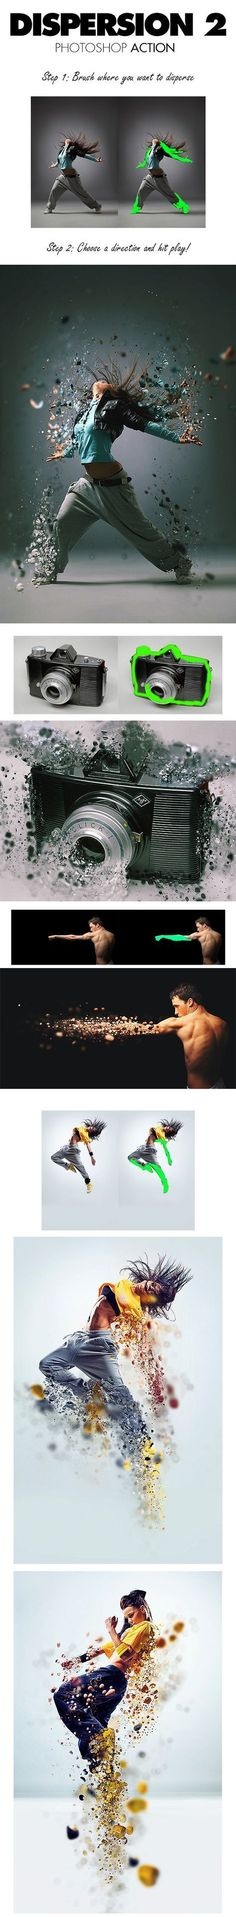 PHOTOGRAPHY ~ TIPS & TRICKS ♡ IDEAS 6-Dispersion 2 Photoshop Action